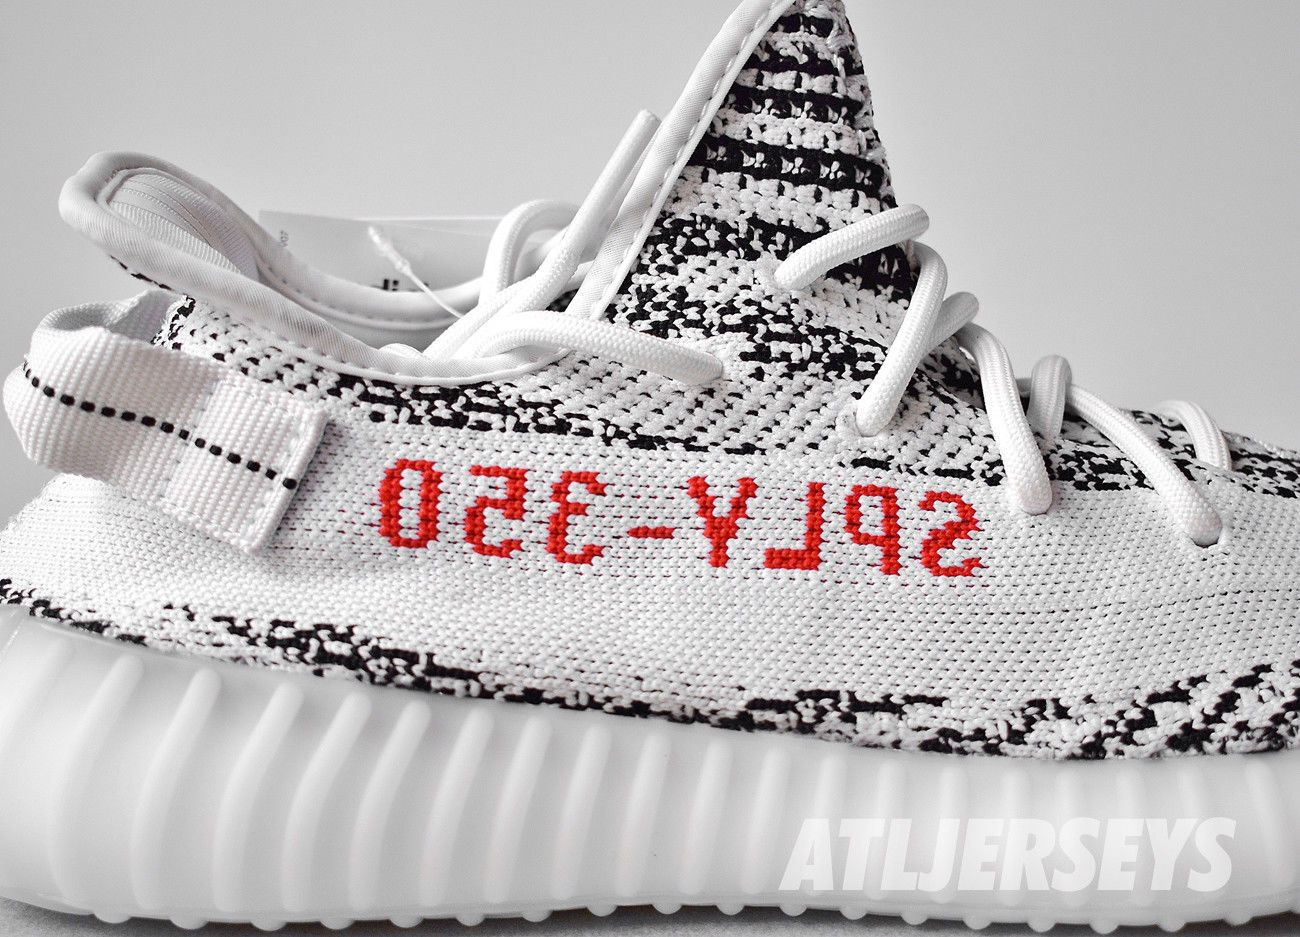 3f98c75478a3e Adidas Yeezy Boost 350 V2 Zebra Kanye 100% Authentic White Red Size 4-14  CP9654